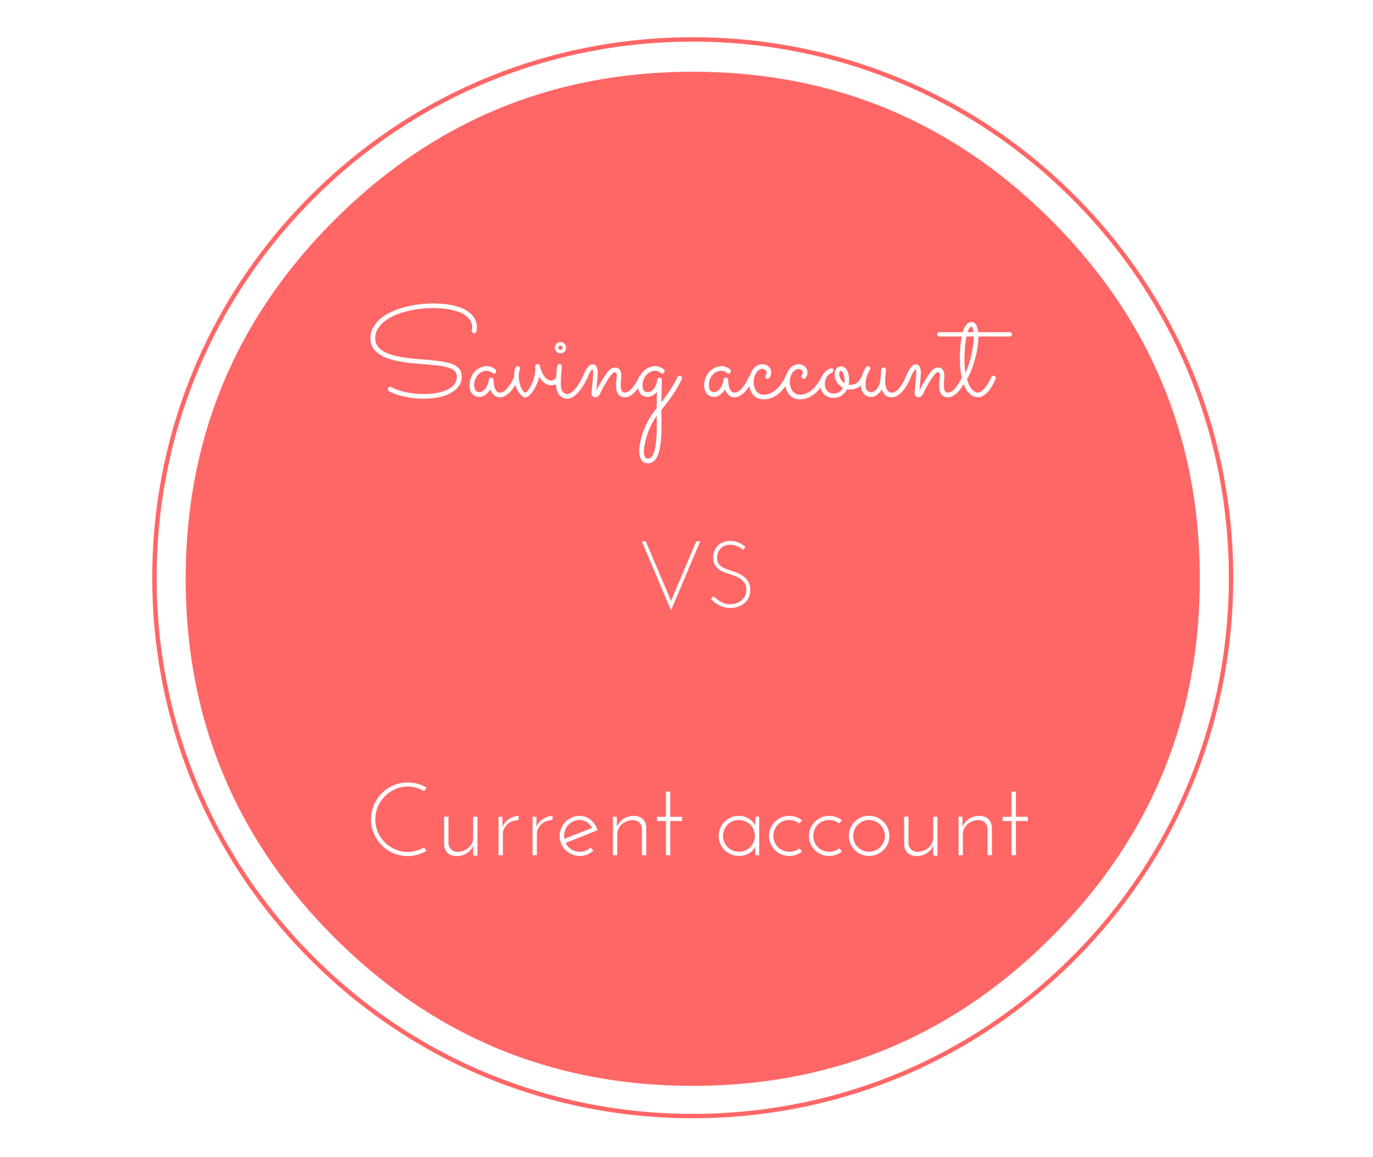 Difference between saving account and current account